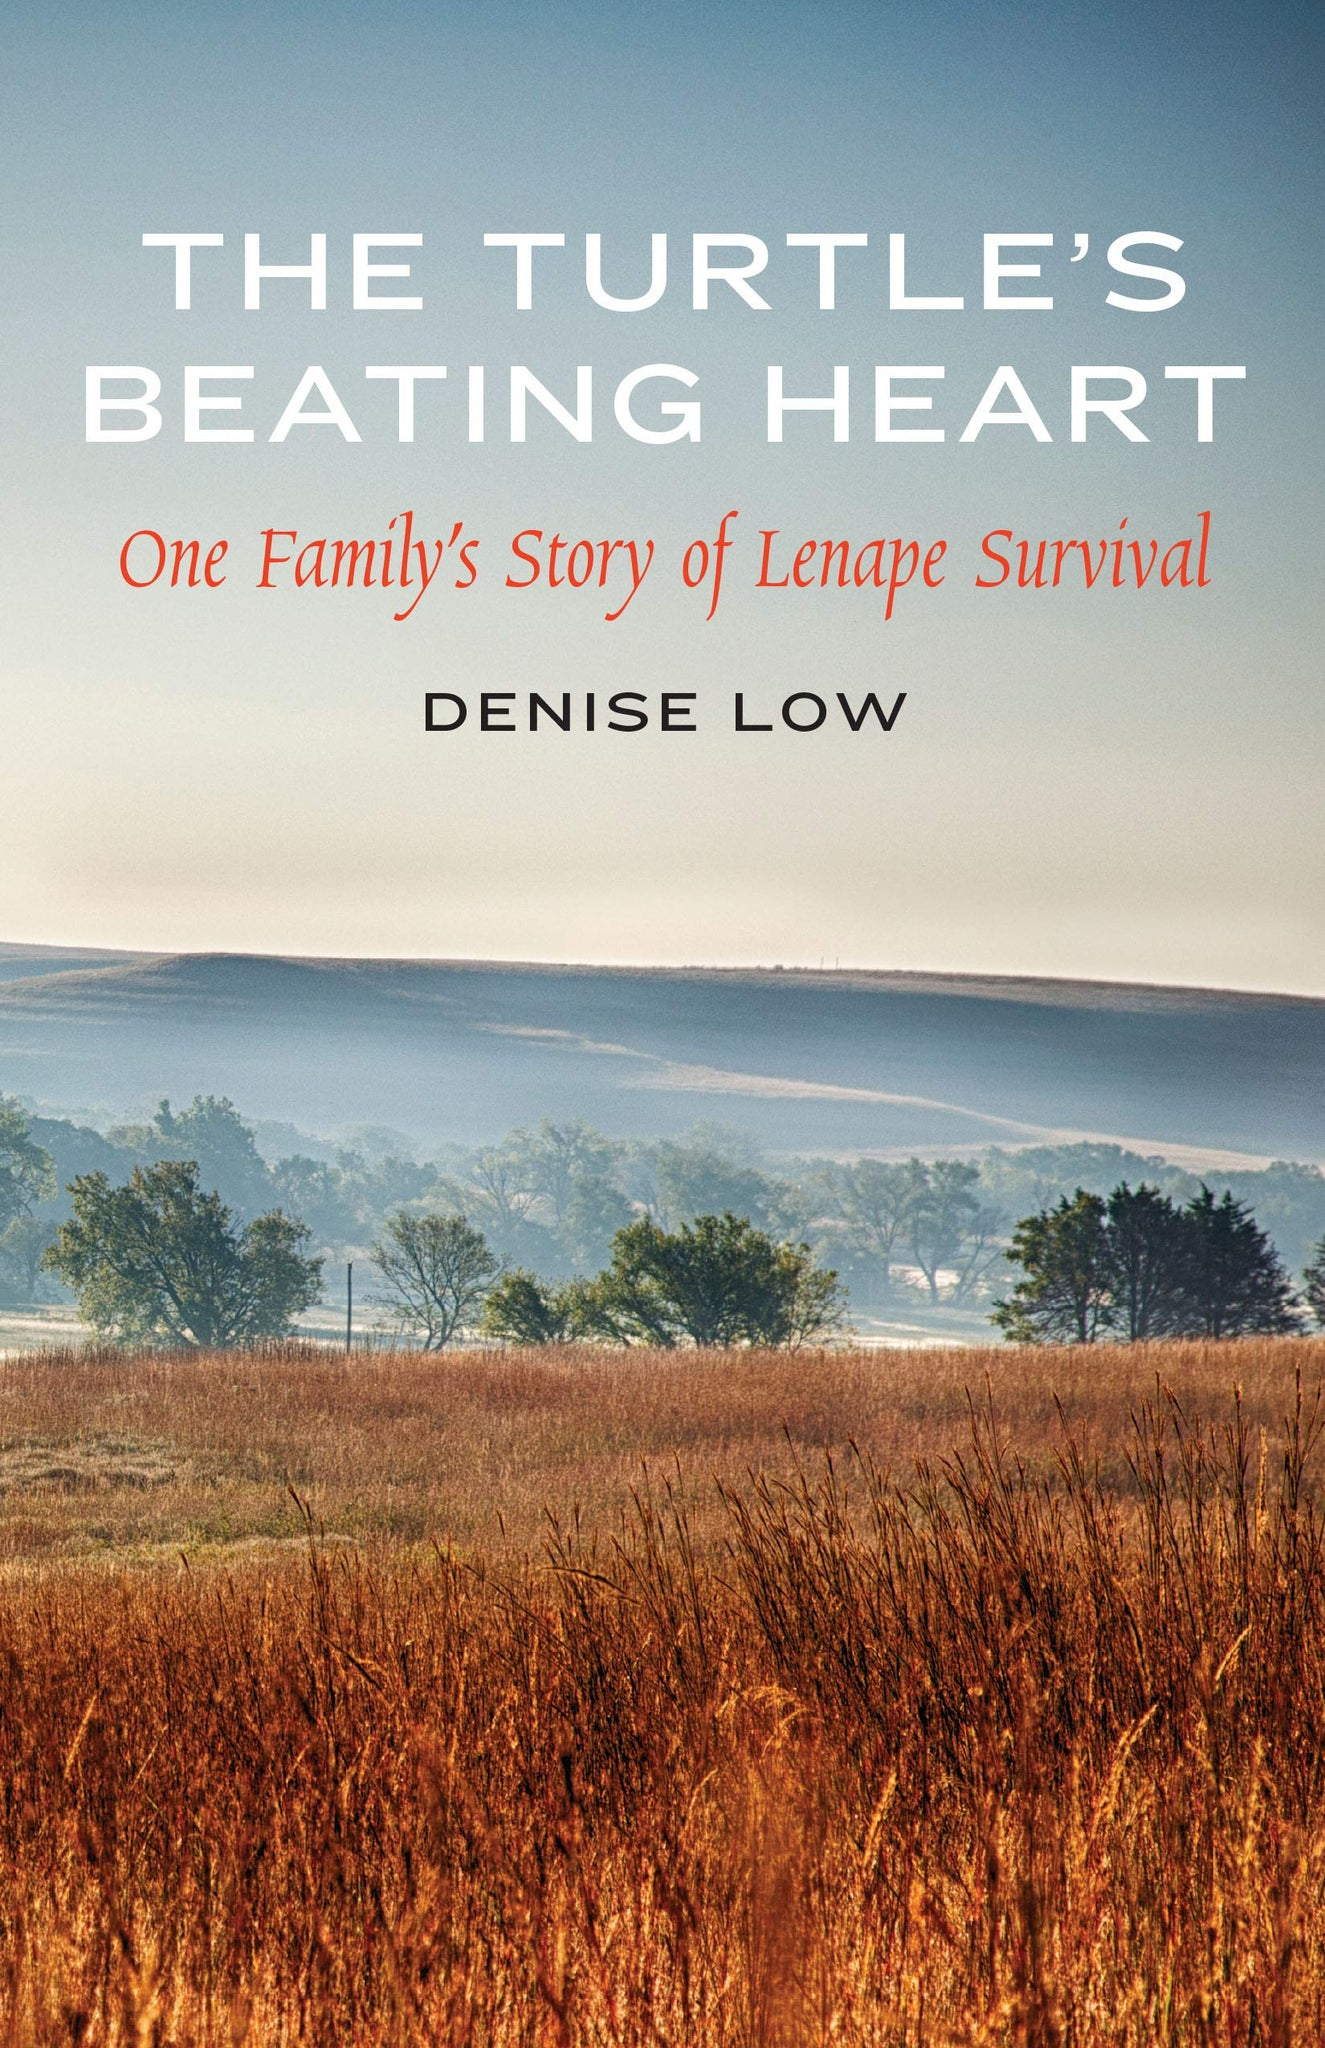 The Turtle's Beating Heart: One Family's Story of Lenape Survival